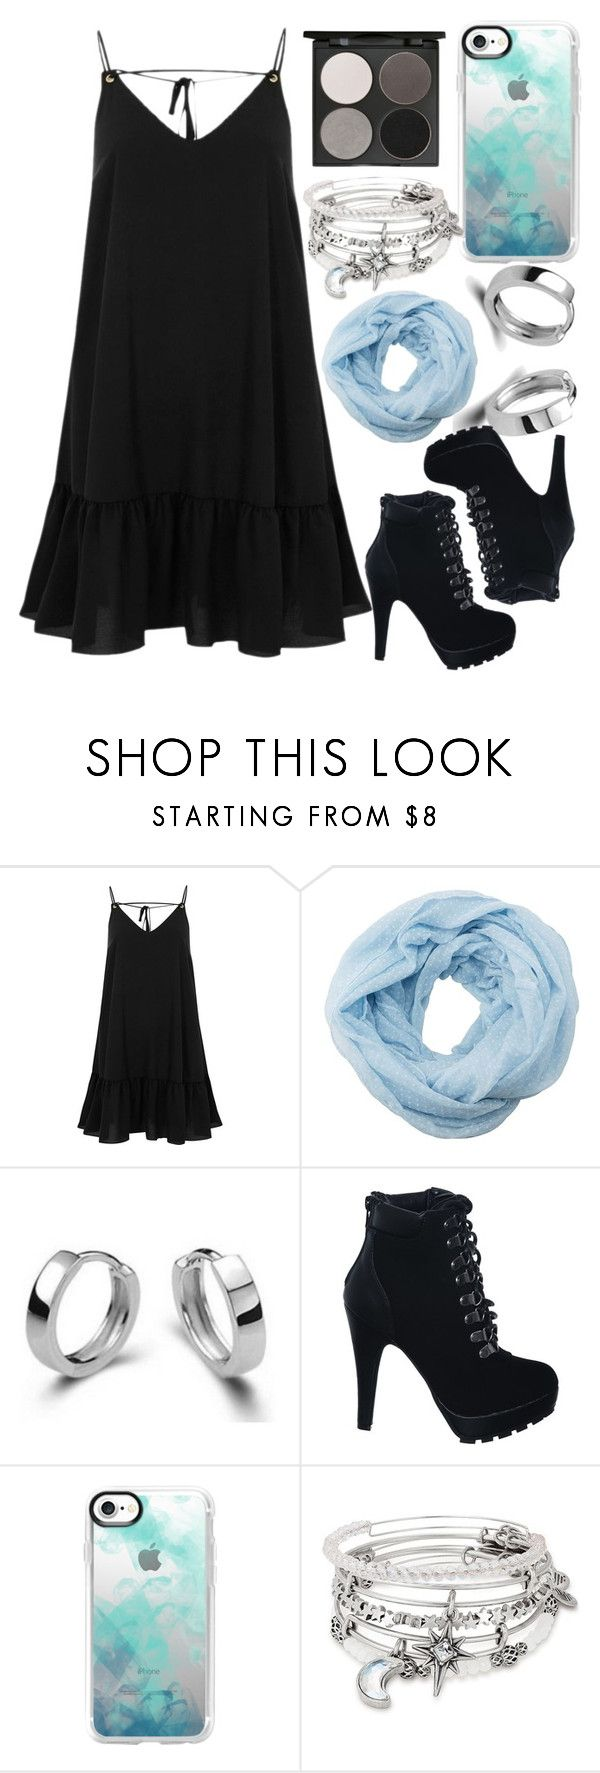 """""""Selling a dream"""" by sarah-rose-312205 on Polyvore featuring River Island, Charlotte Russe, Casetify, Alex and Ani and Gorgeous Cosmetics"""